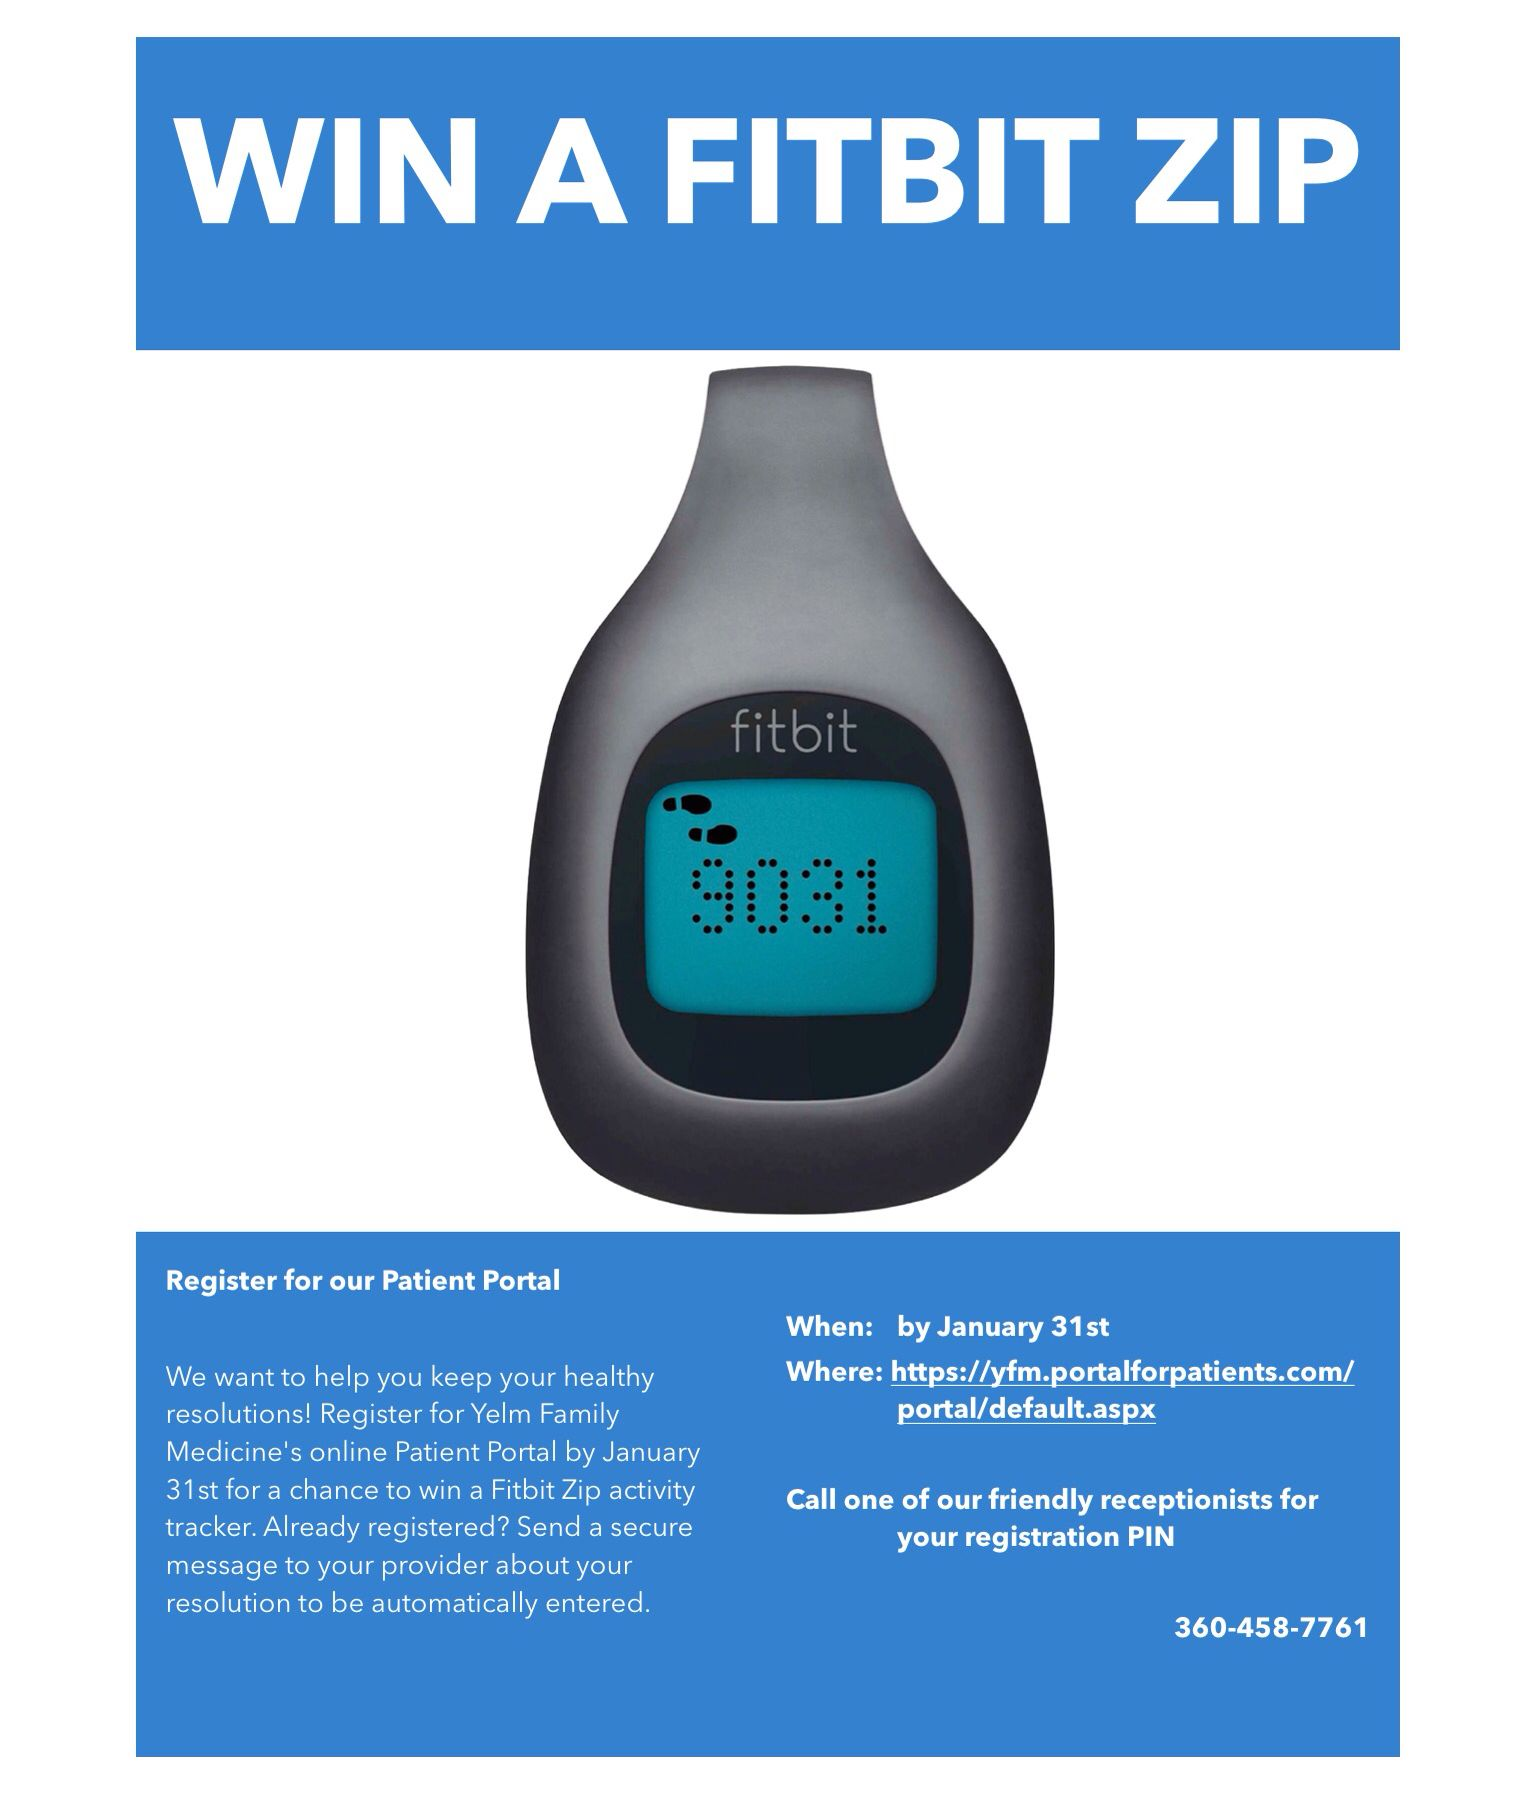 Register for our Patient Portal for your chance to win